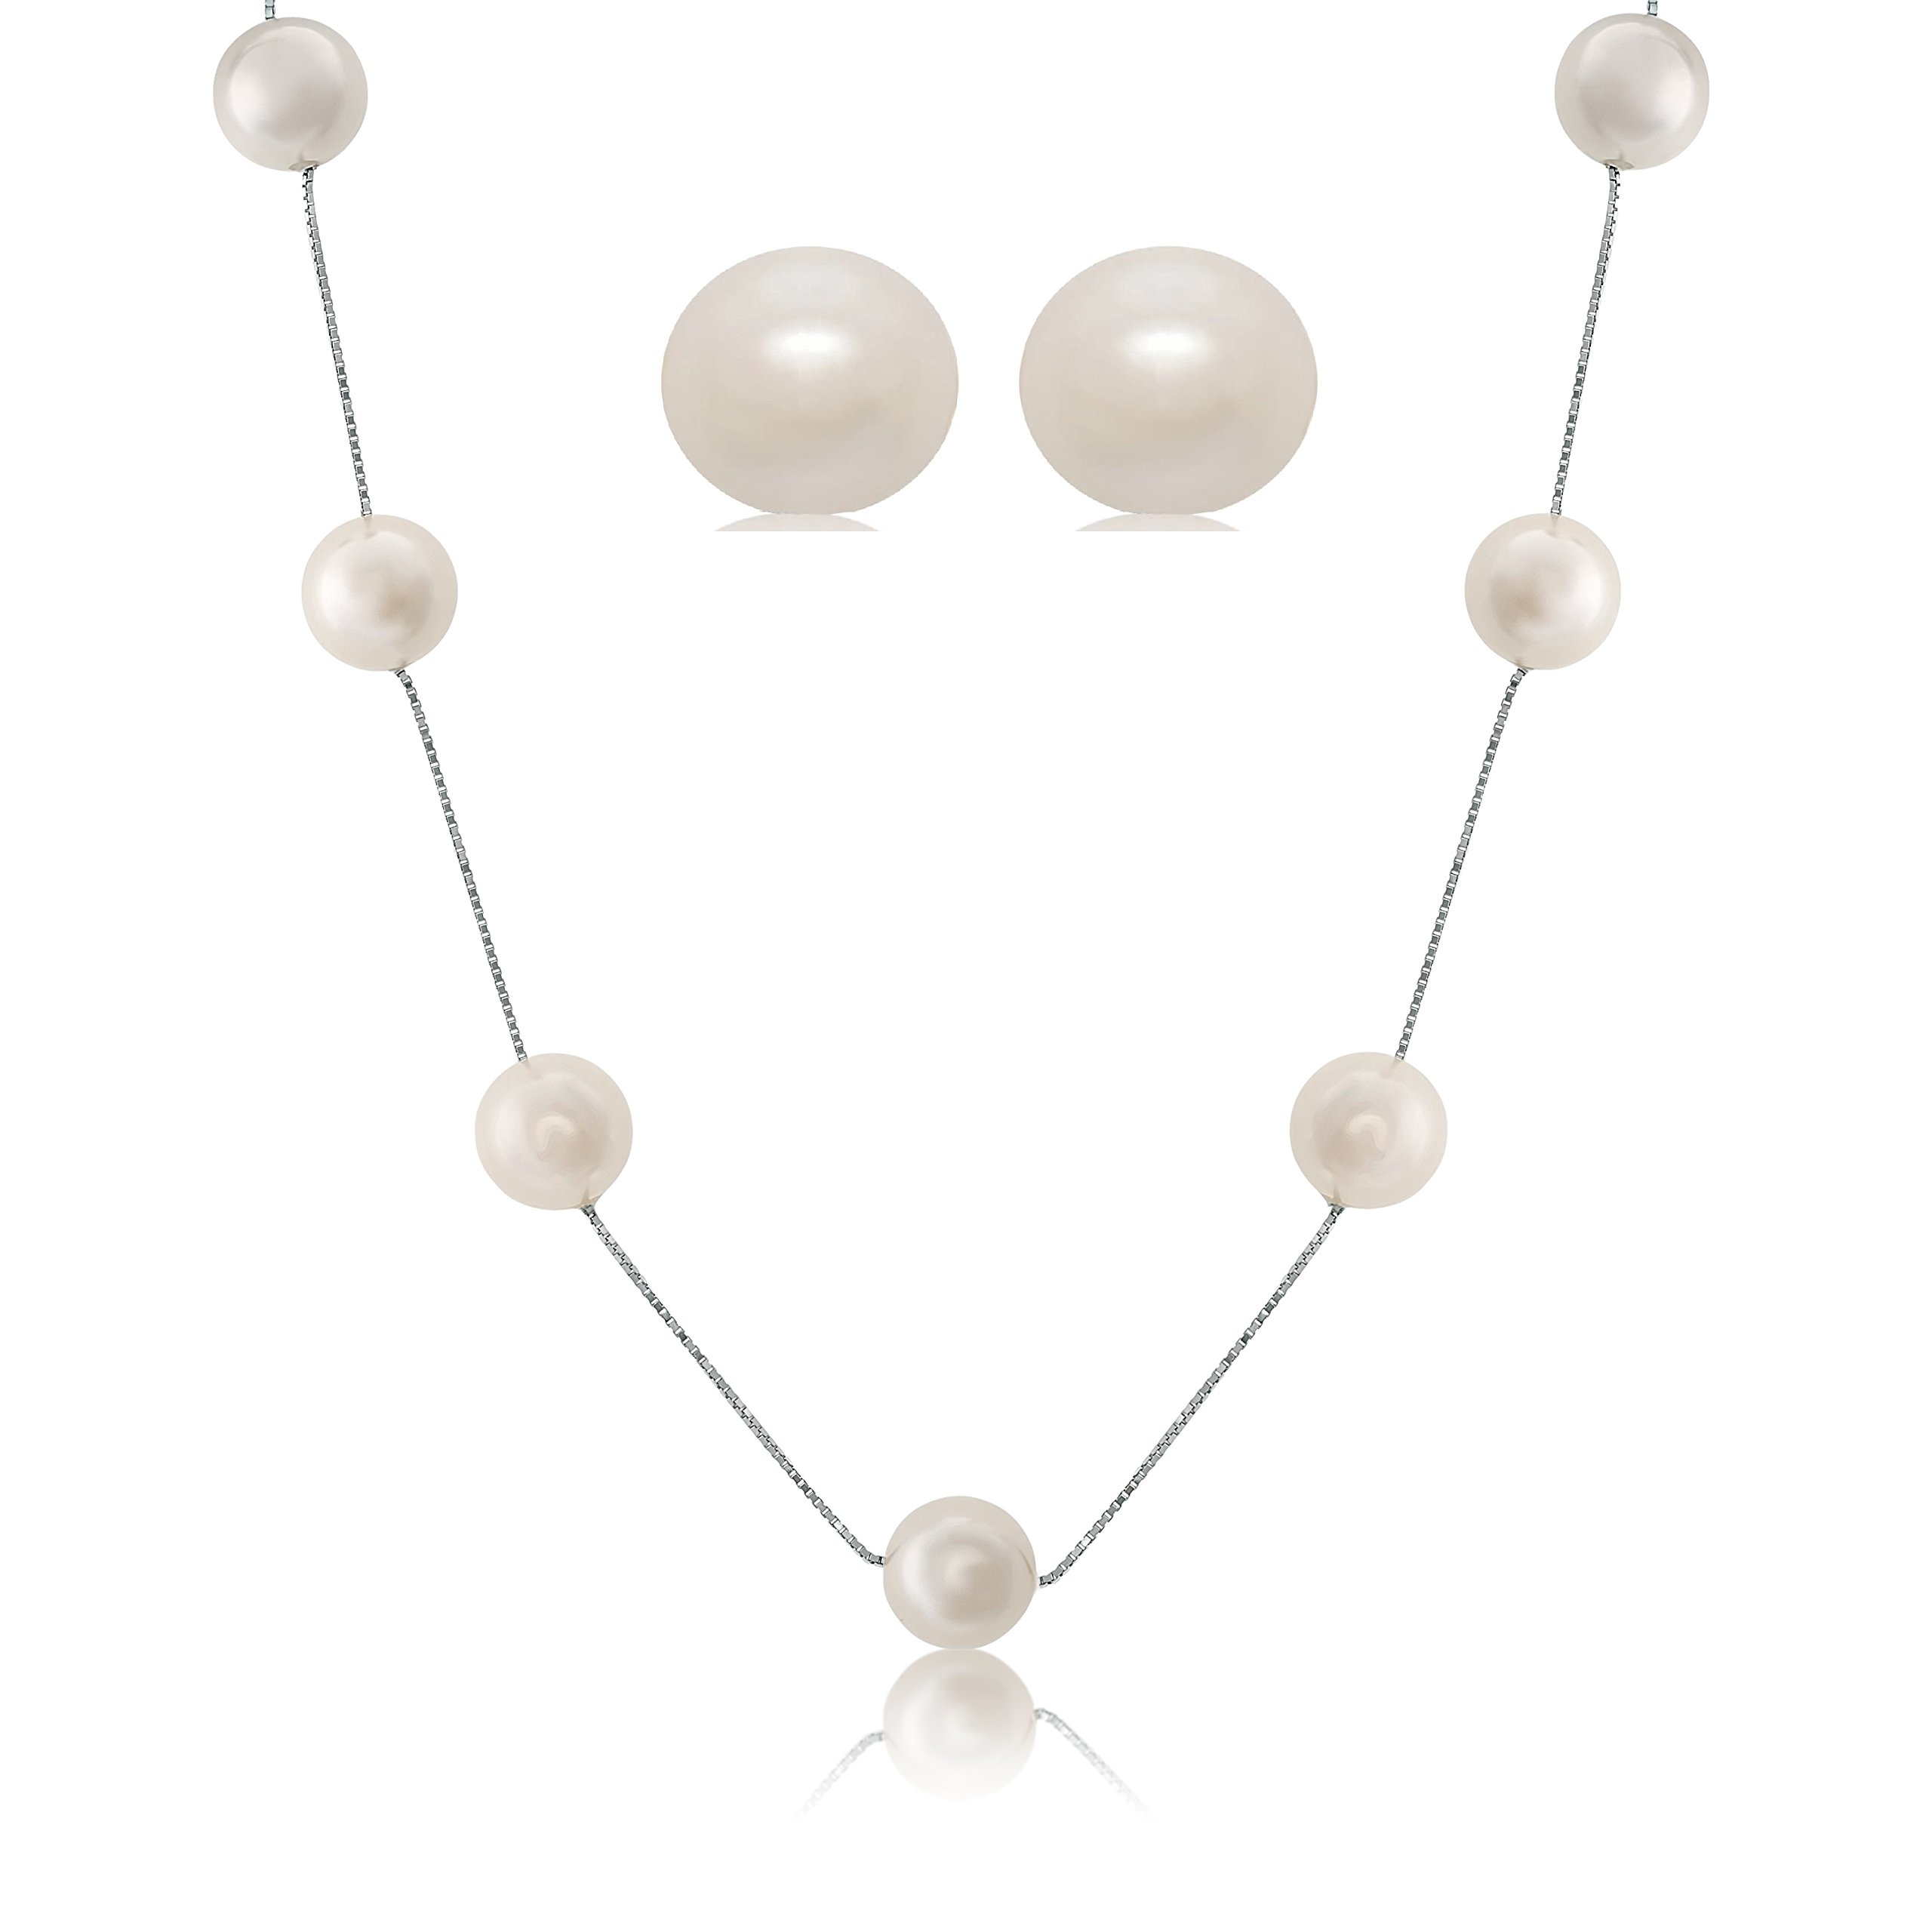 Sterling Silver White Shell Pearl Station Necklace Earrings, Gift Boxed Set (11-12 mm)